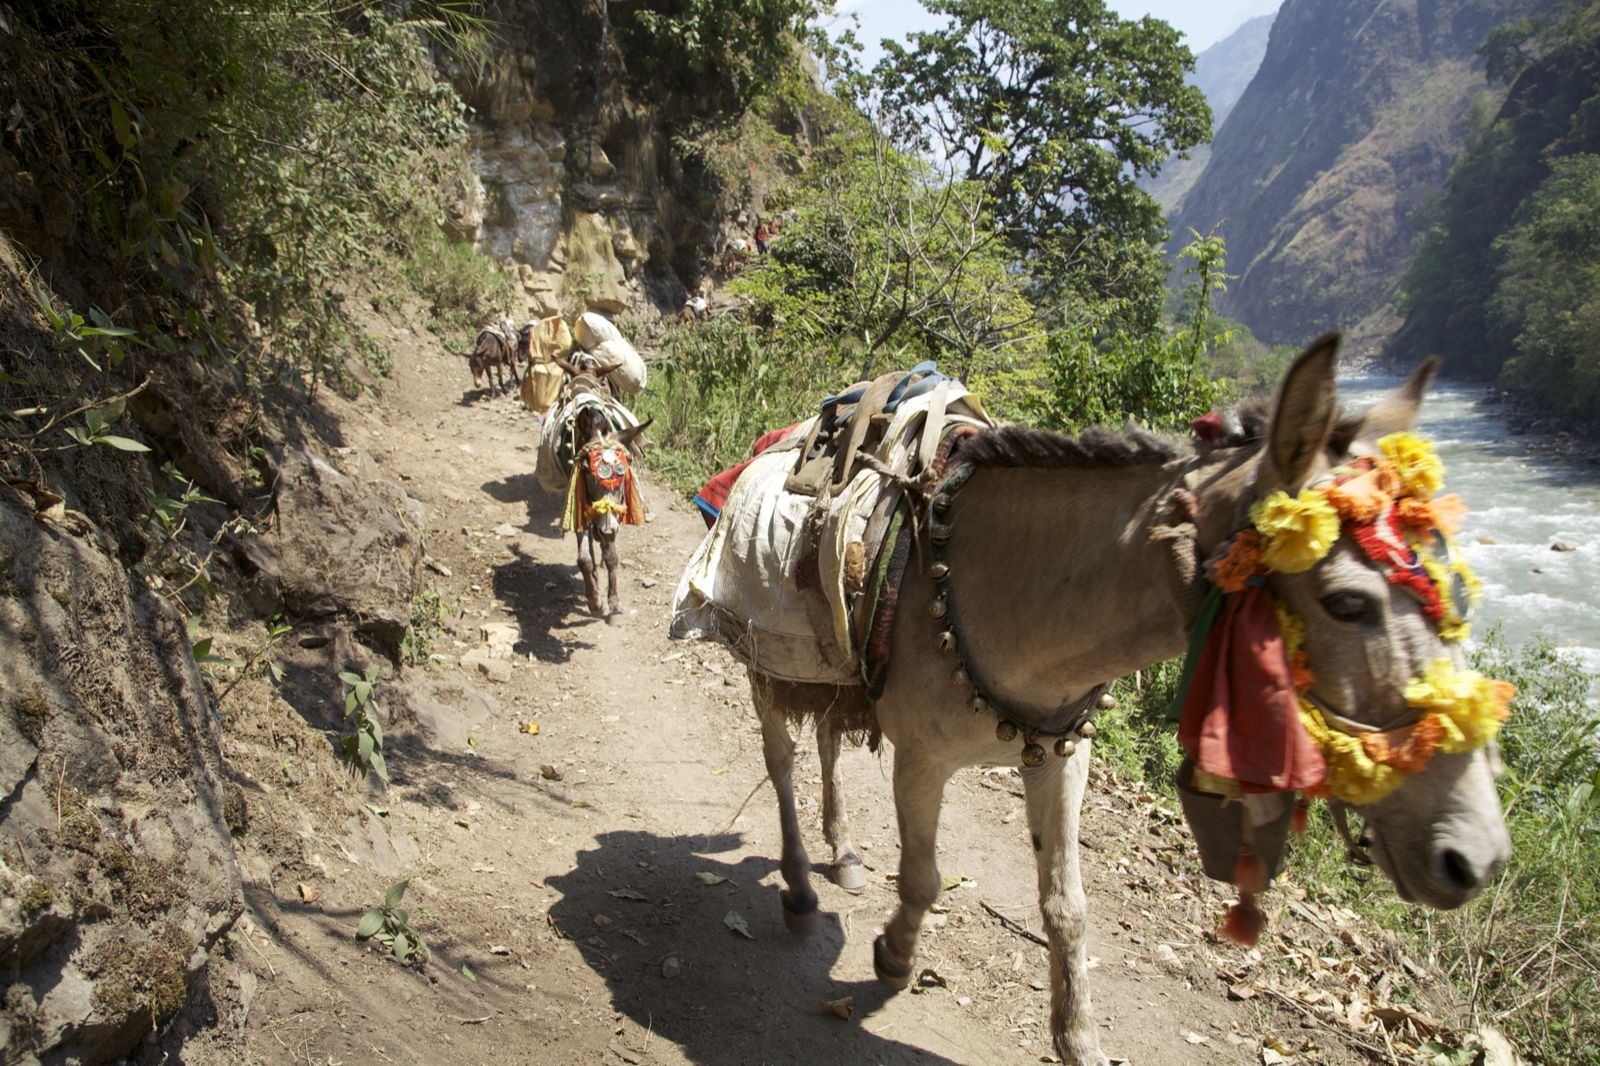 Mule on manaslu trek